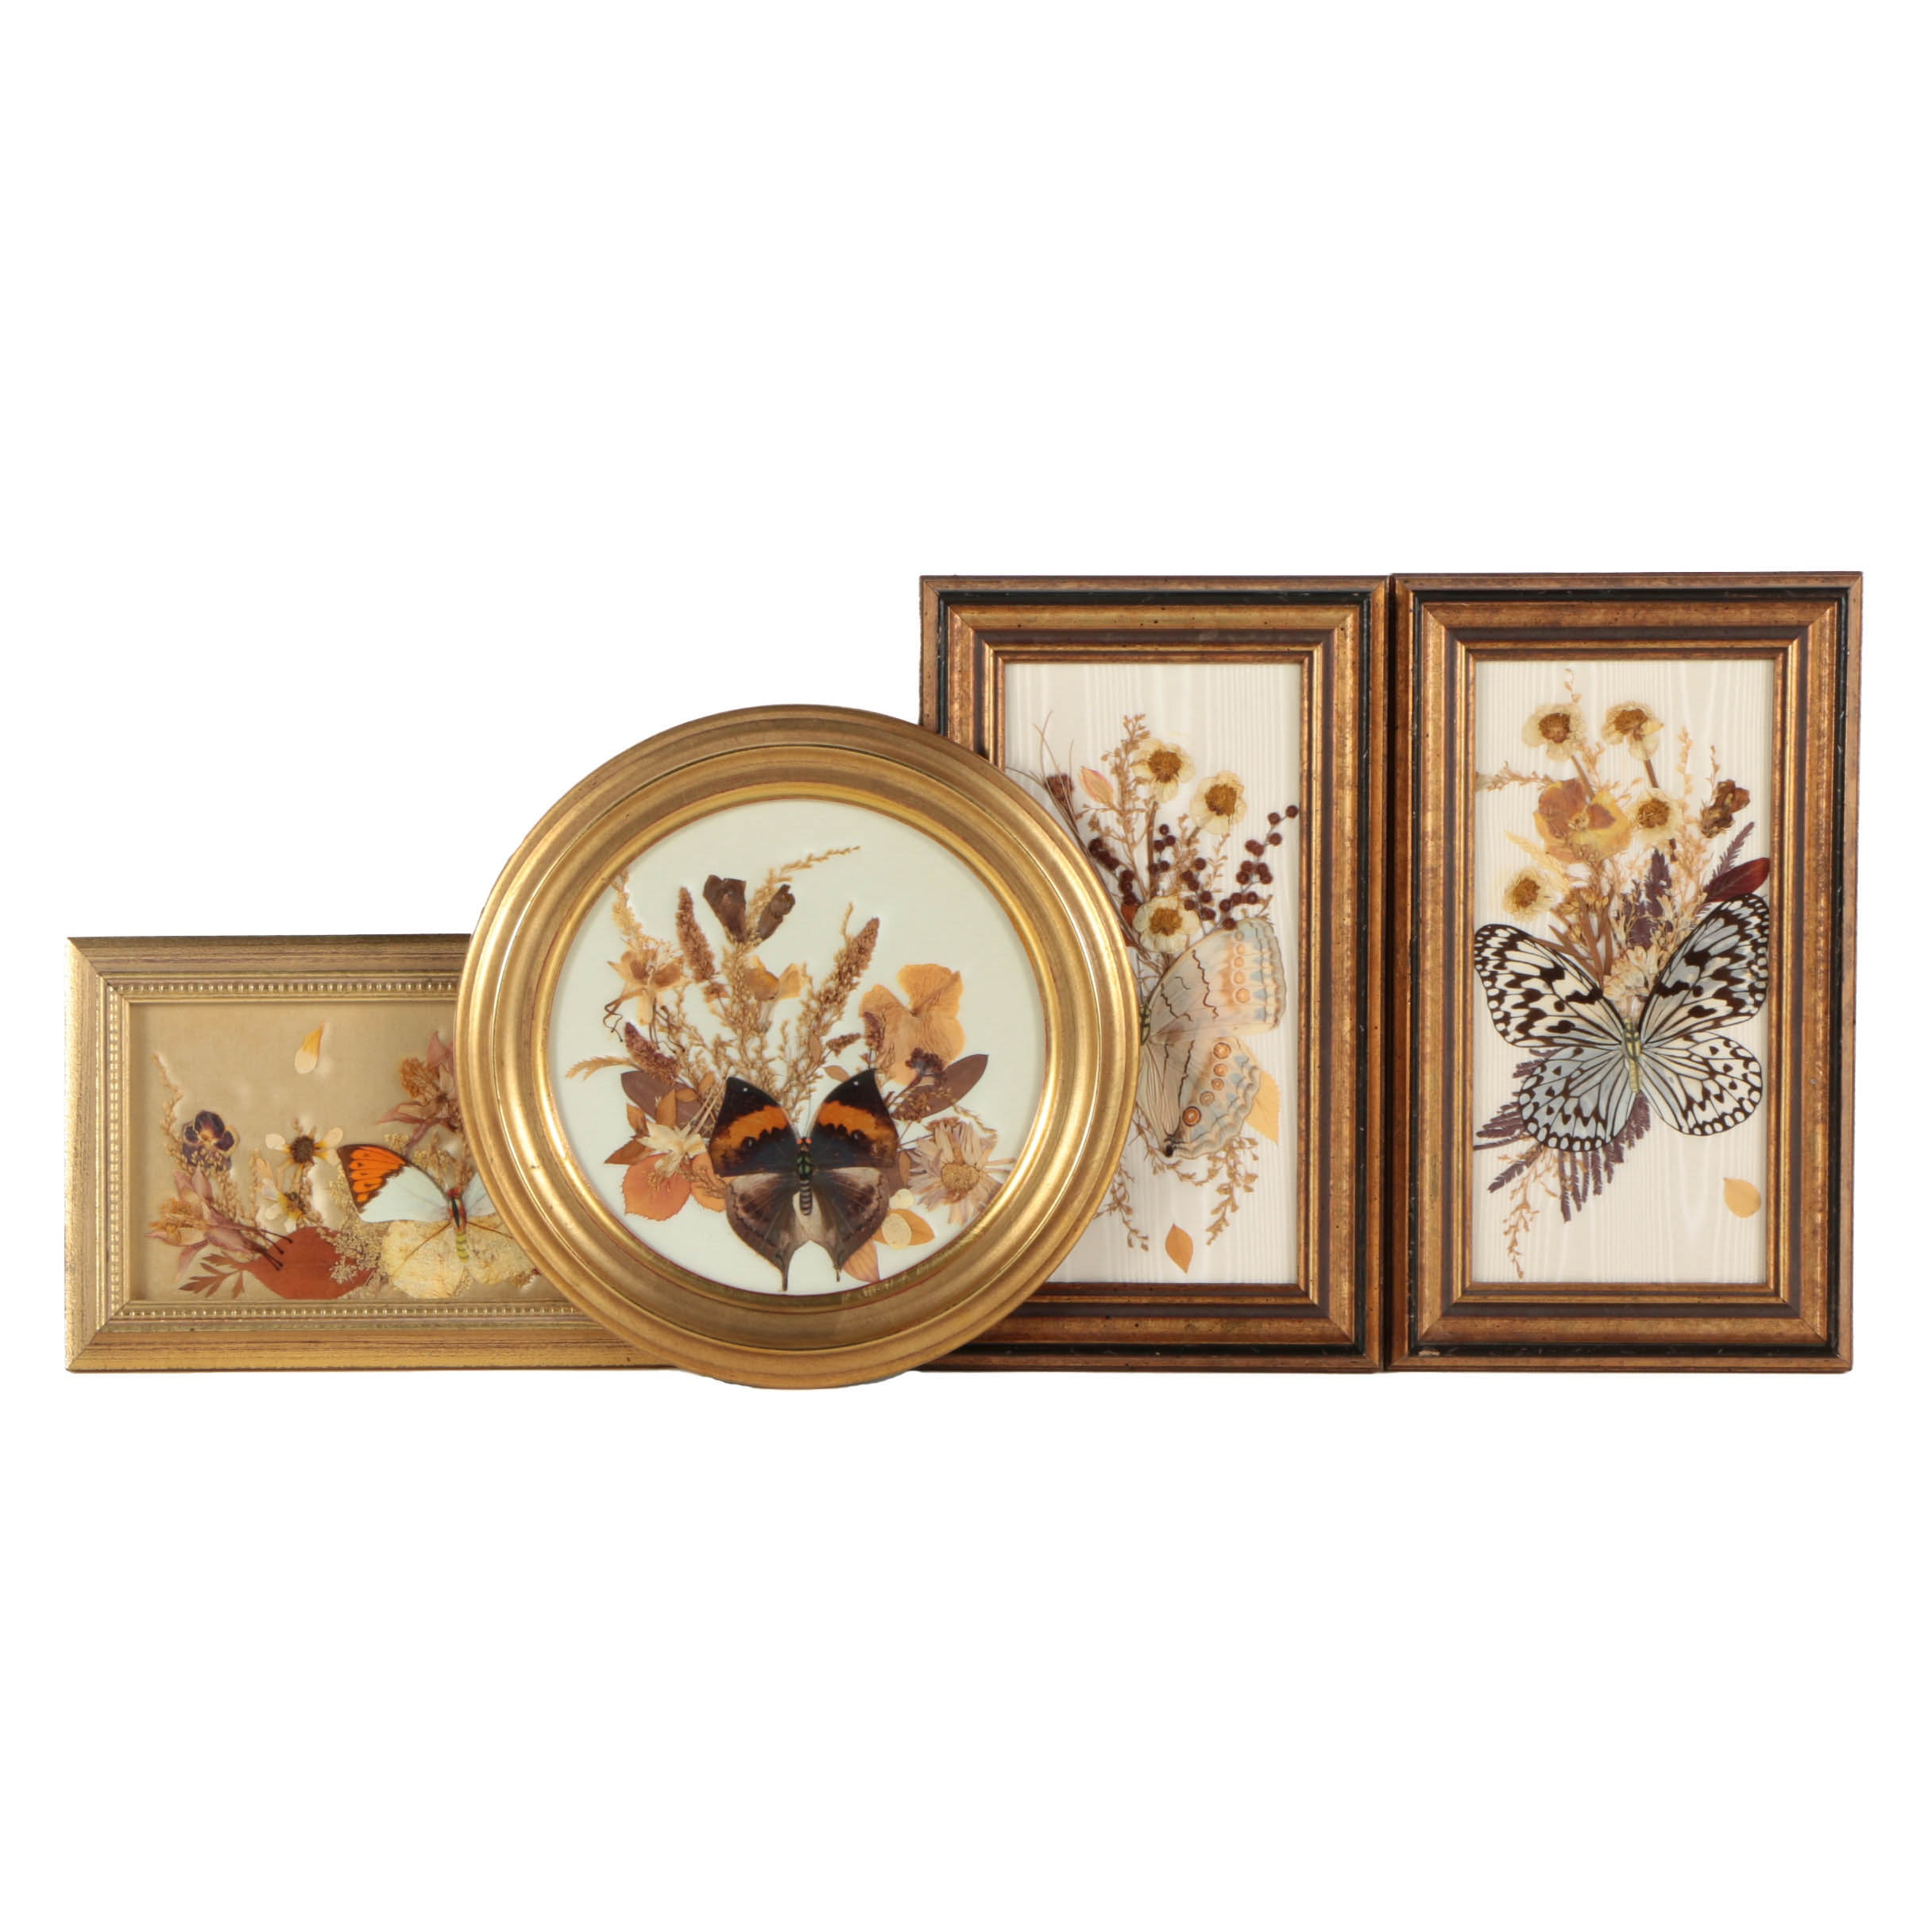 Assortment of Pressed Butterflies and Flowers on Fabric